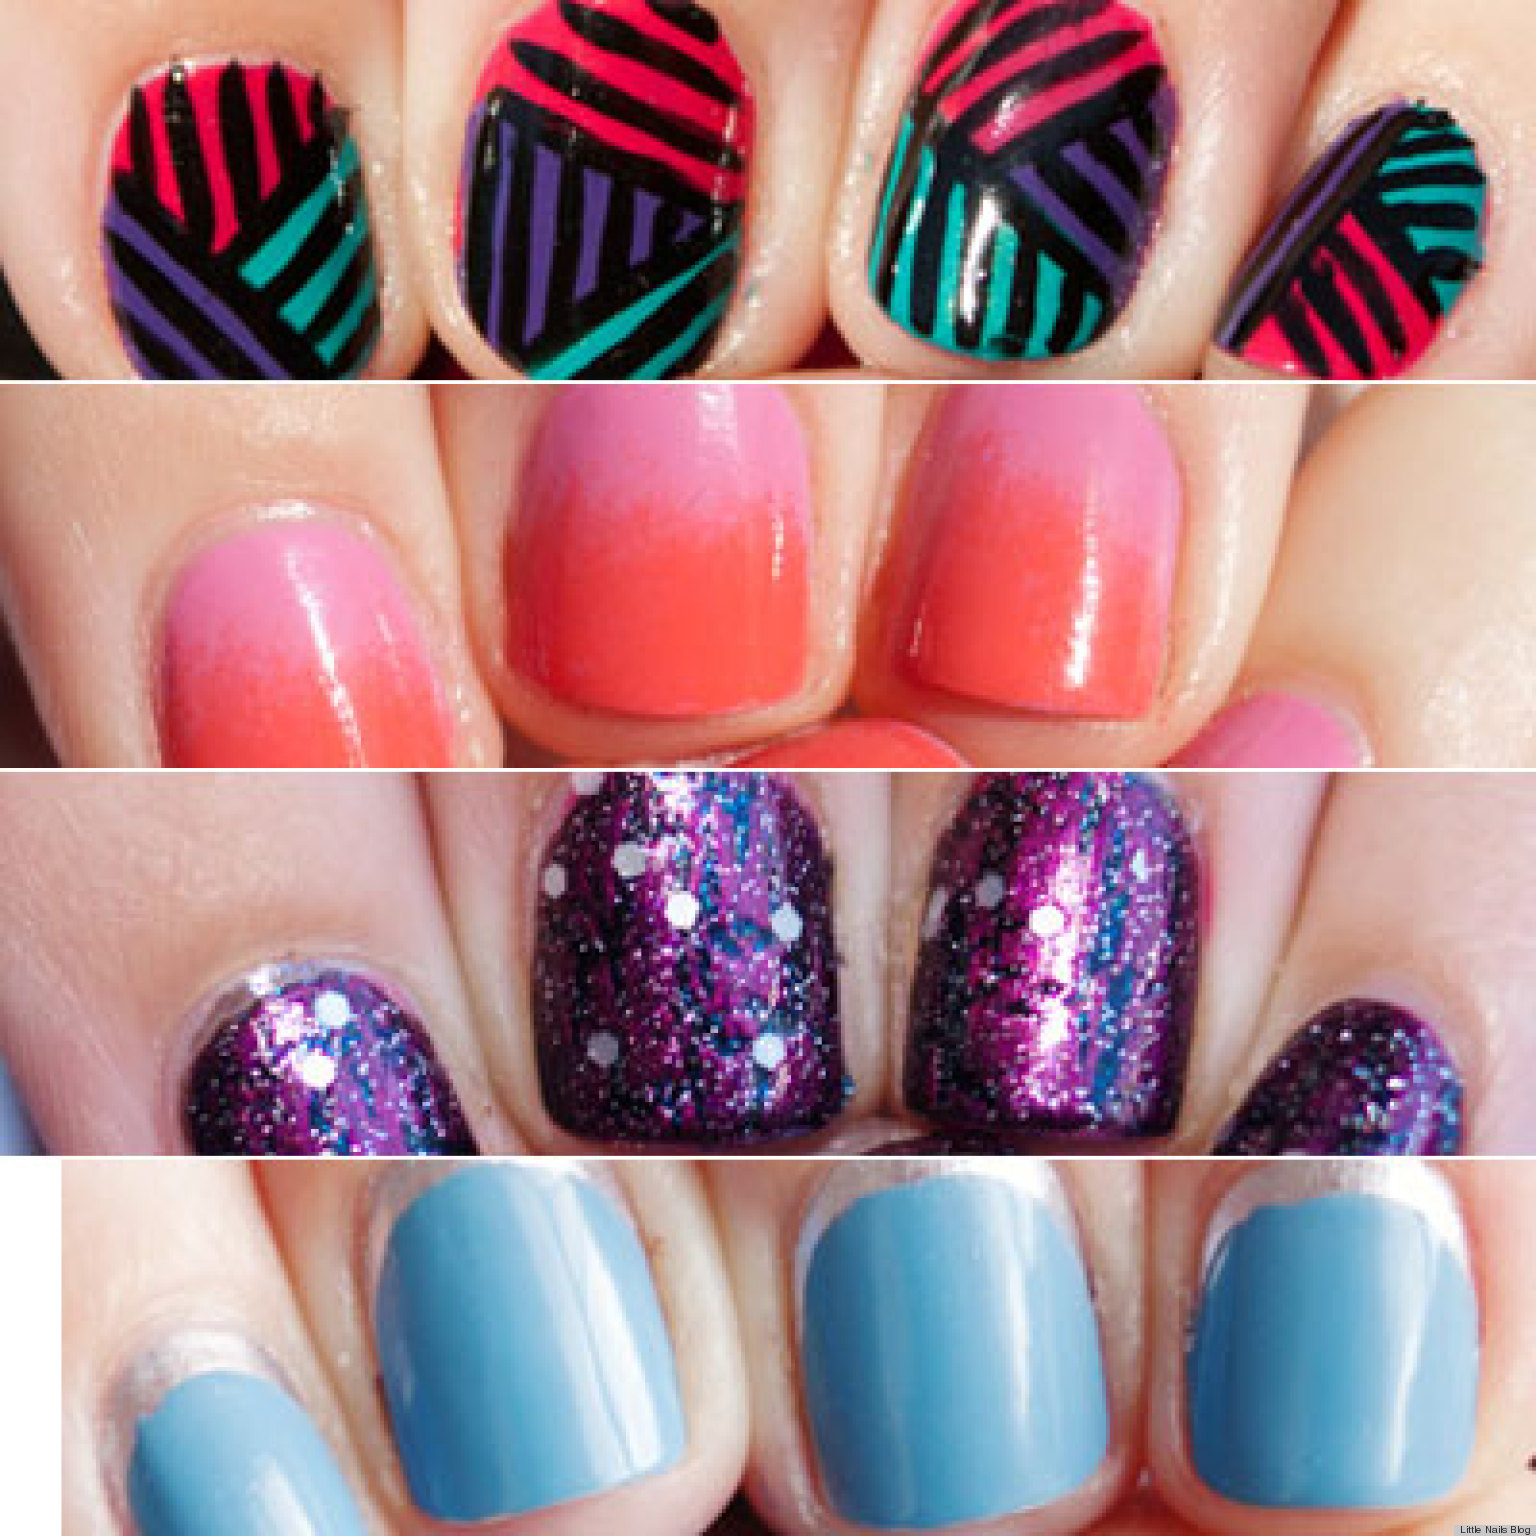 13 nail art ideas for teeny tiny fingertips photos huffpost - Nail Polish Design Ideas